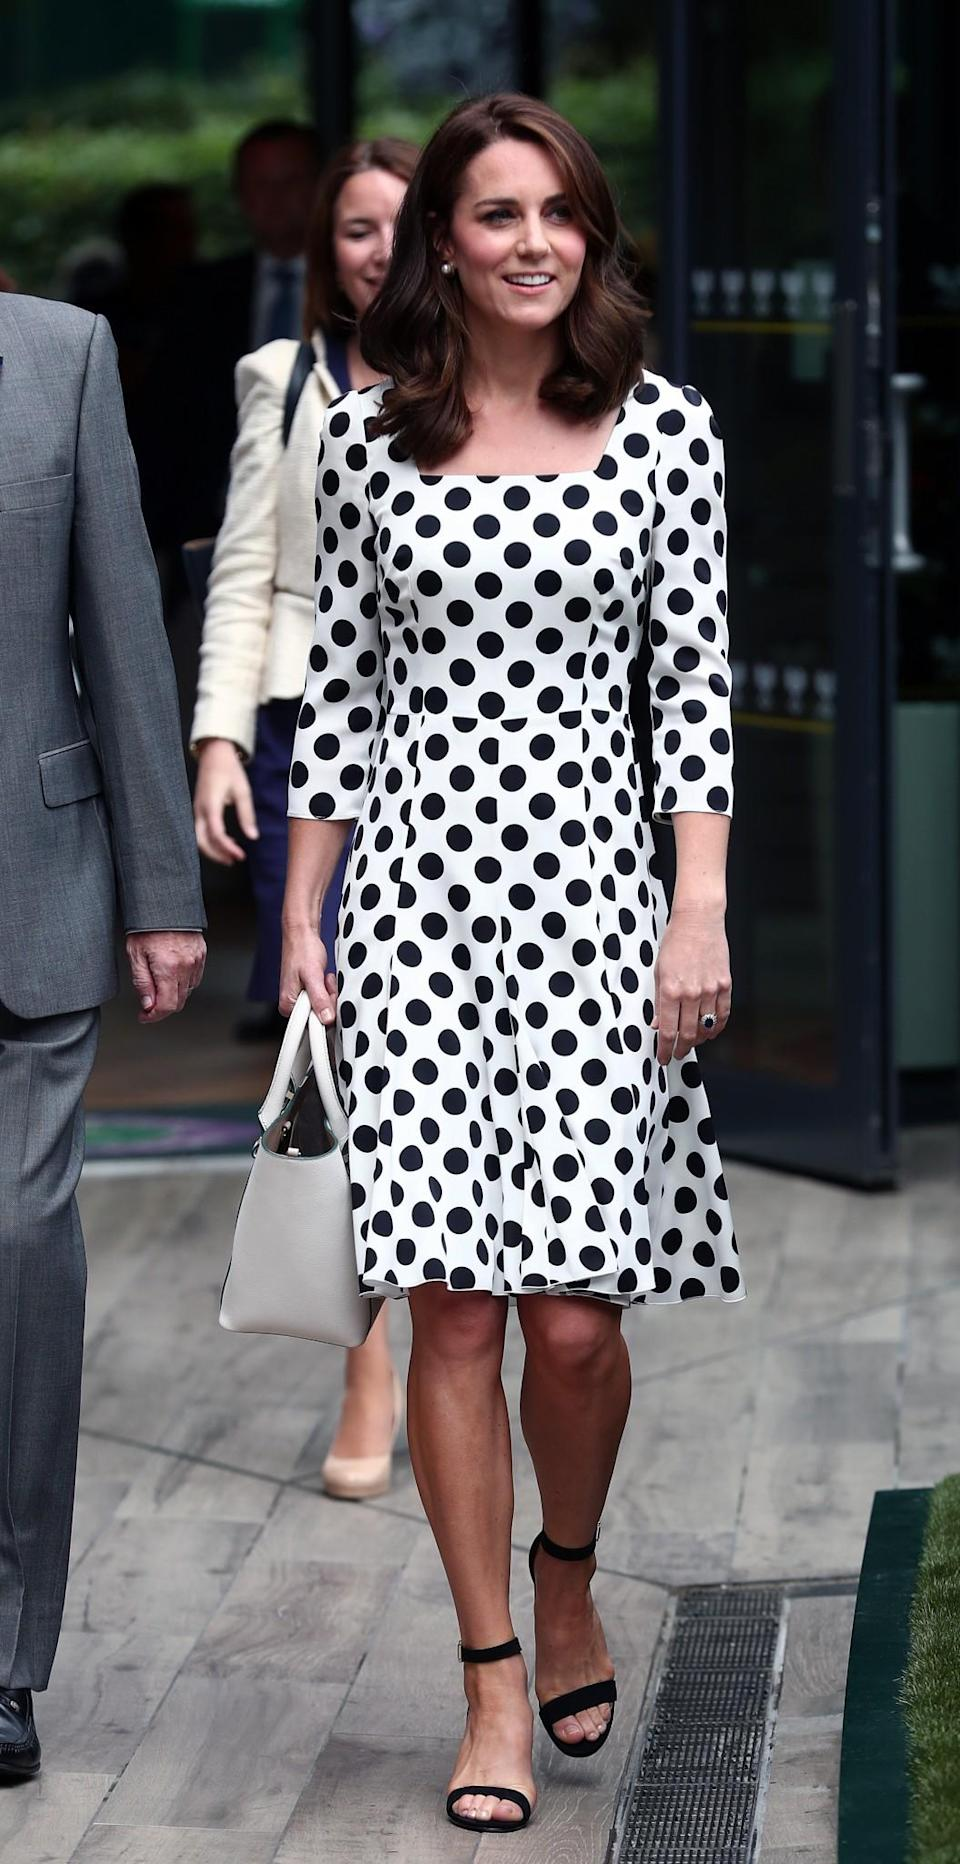 <p>The Duchess arrived for the first day of Wimbledon in a stand-out polka dot dress by Dolce & Gabbana. Sporting a brand new shorter hairstyle, Kate paired the £930 dress with block-heeled sandals and a white leather bag.<br><i>[Photo: PA]</i> </p>